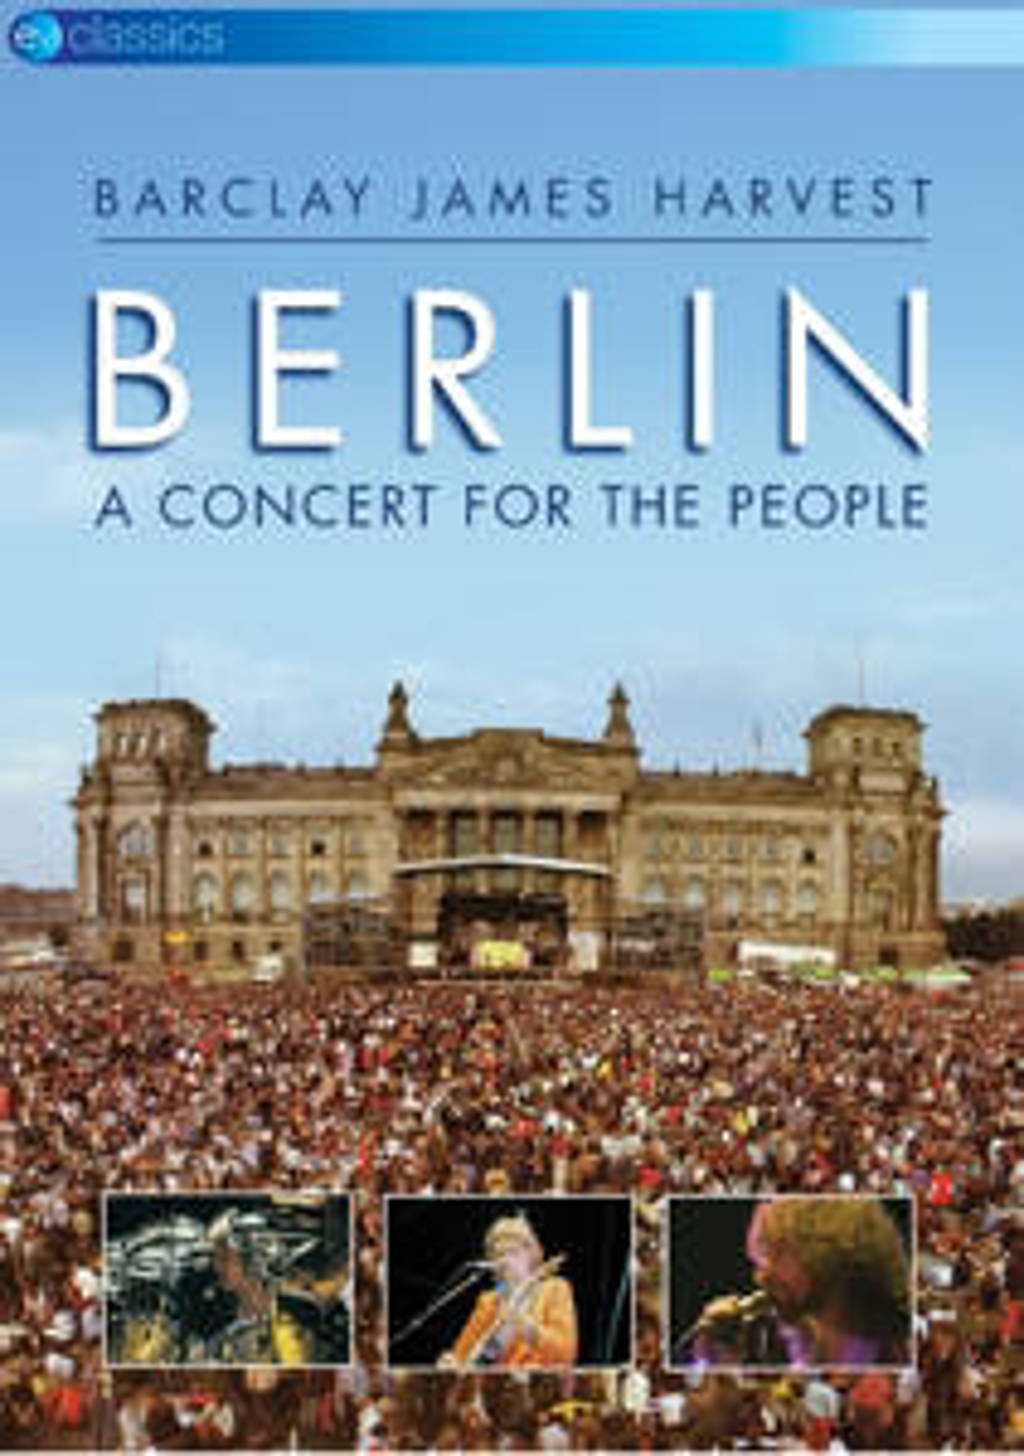 Barclay James Harvest - Berlin - A Concert For The People (DVD)